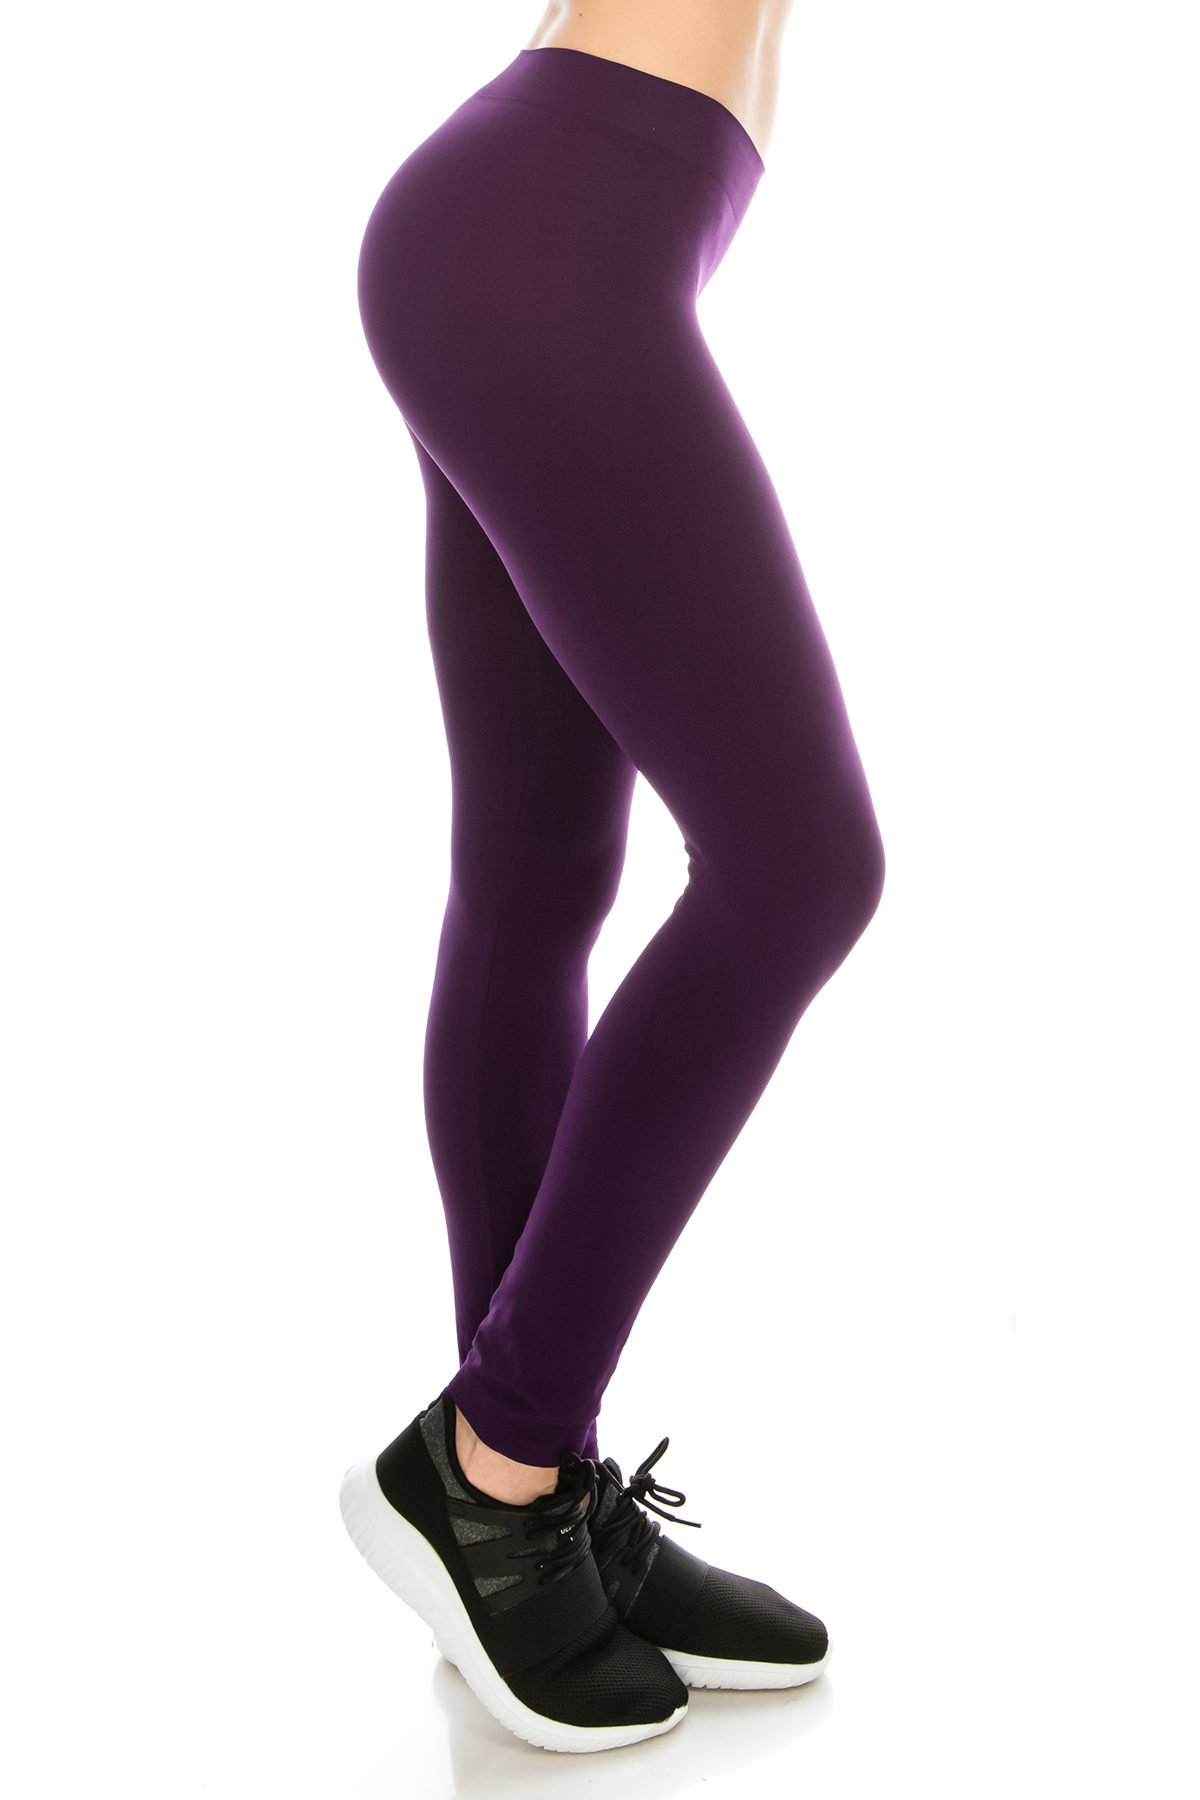 Kurve Premium Ultra Soft High Waist Leggings, UV Protective Fabric UPF 50+ (Made with Love in The USA)